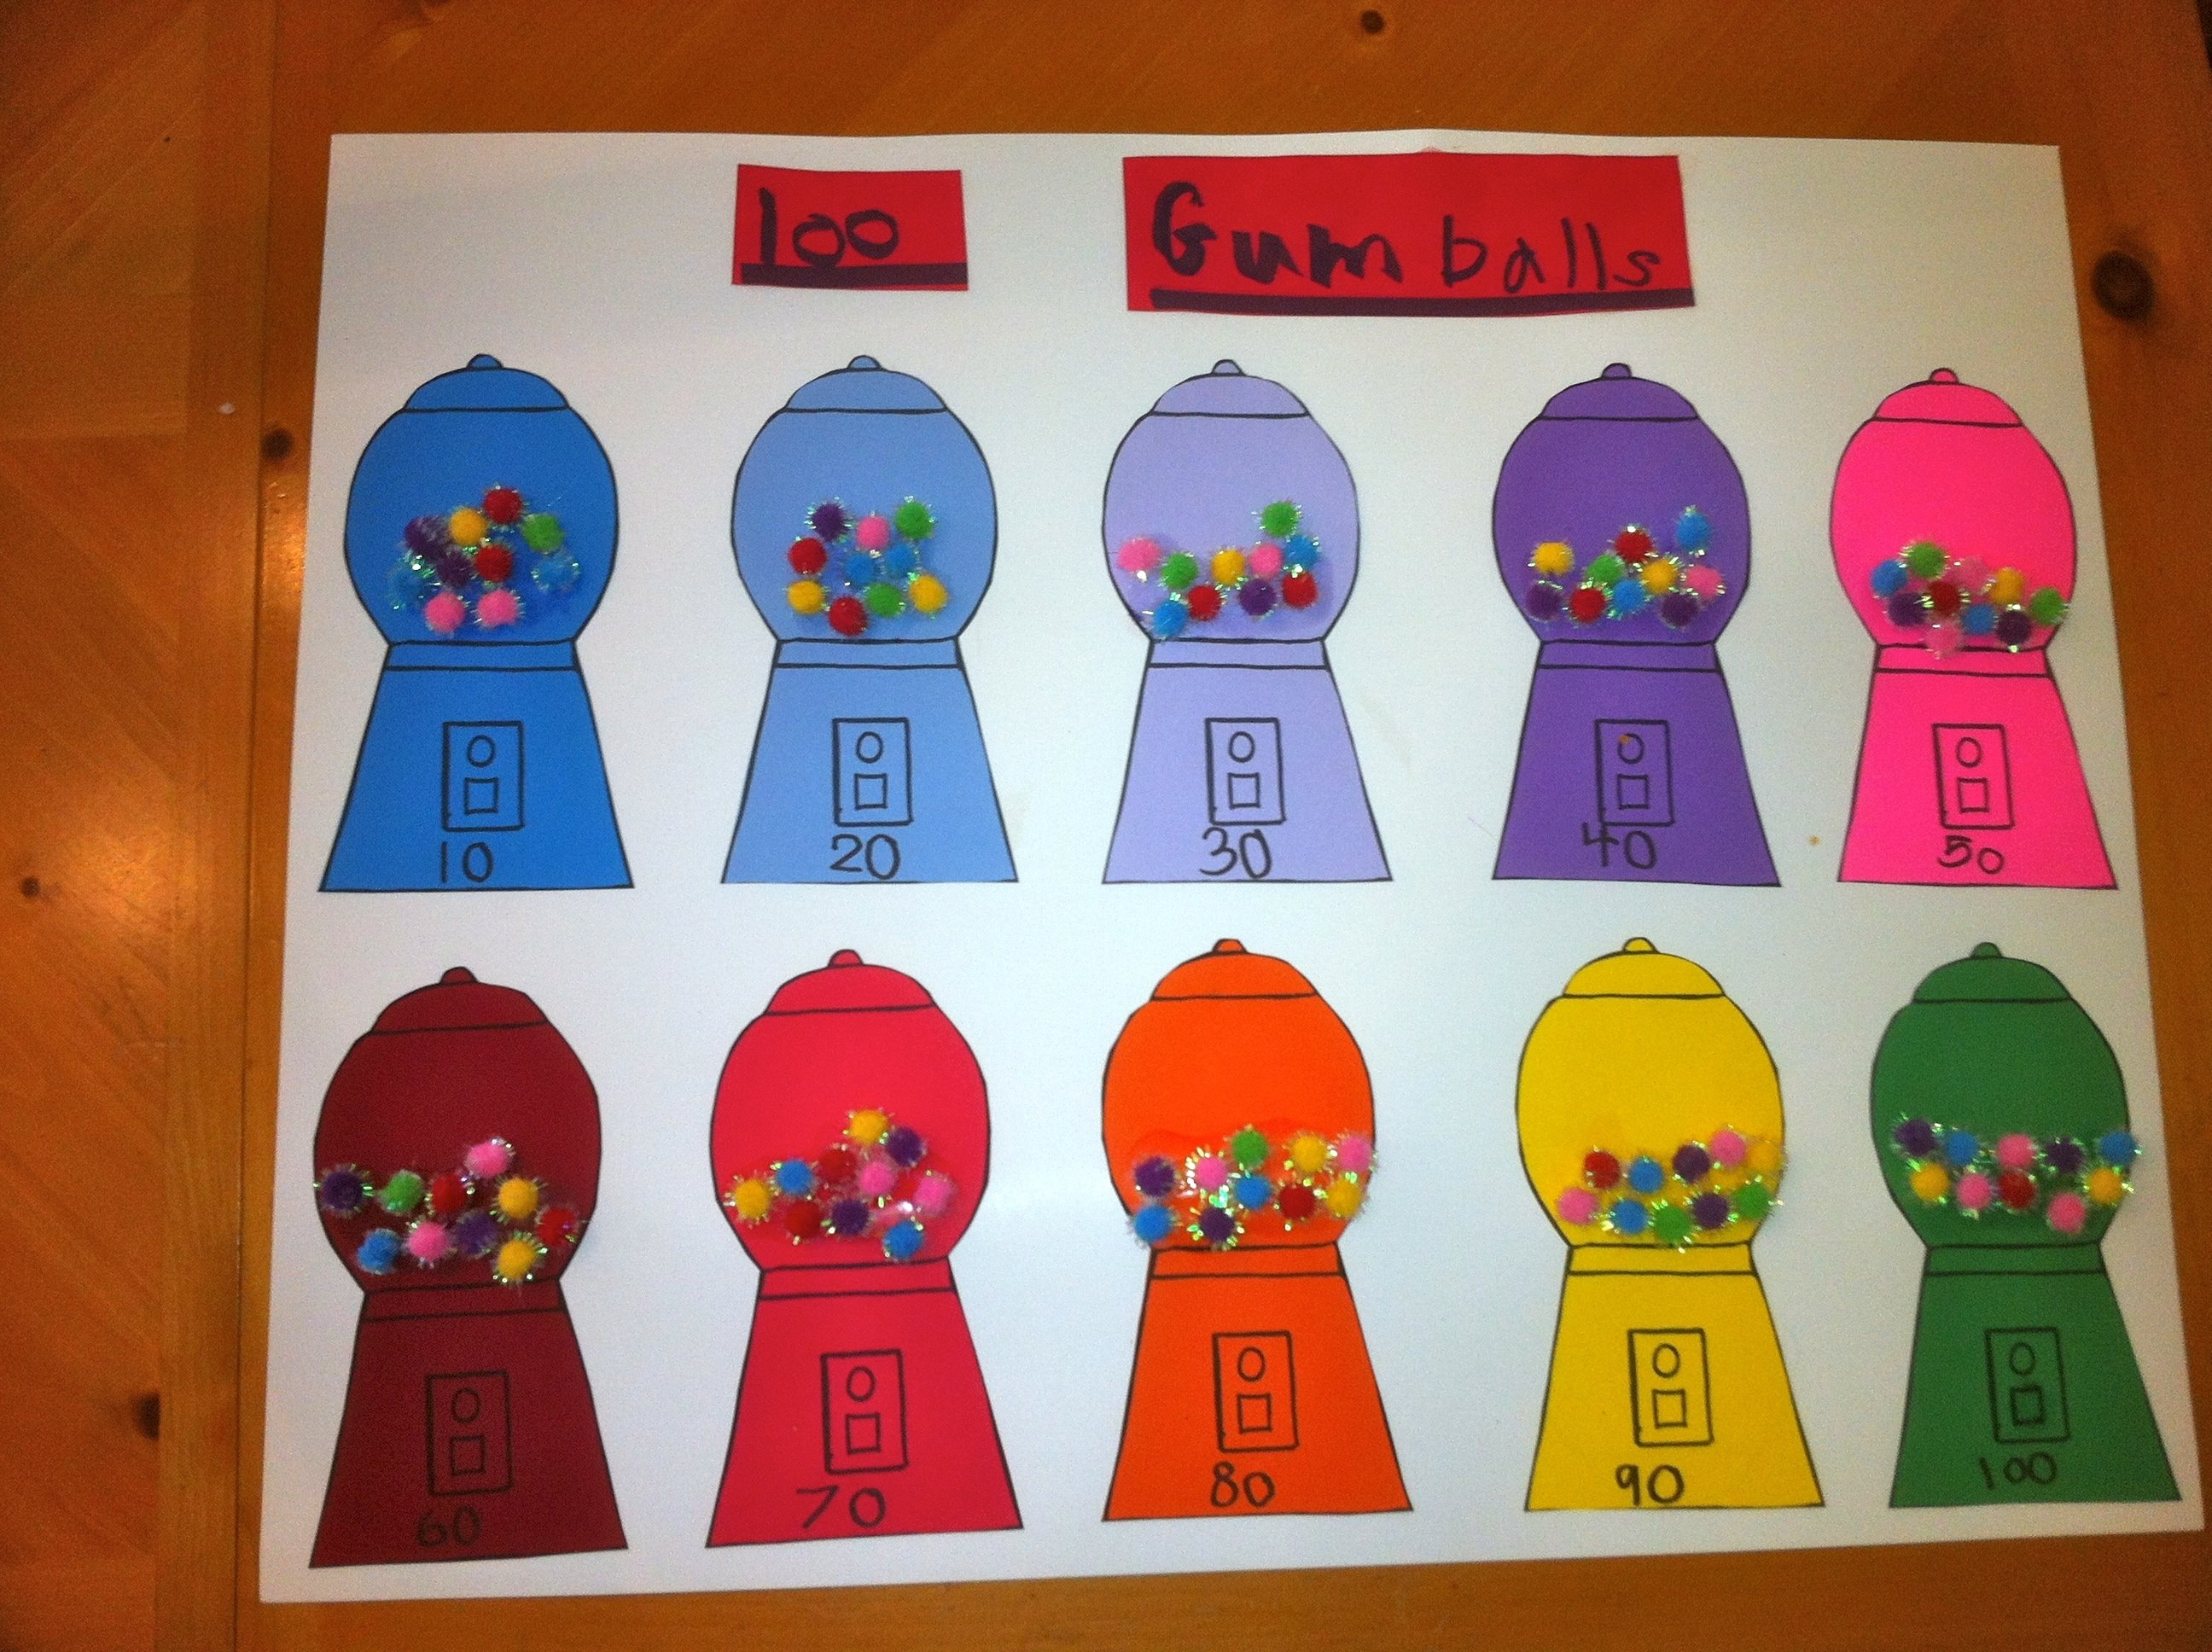 10 Perfect 100 Days Of School Poster Ideas 100th day of school poster gumball machines with pompoms kid 3